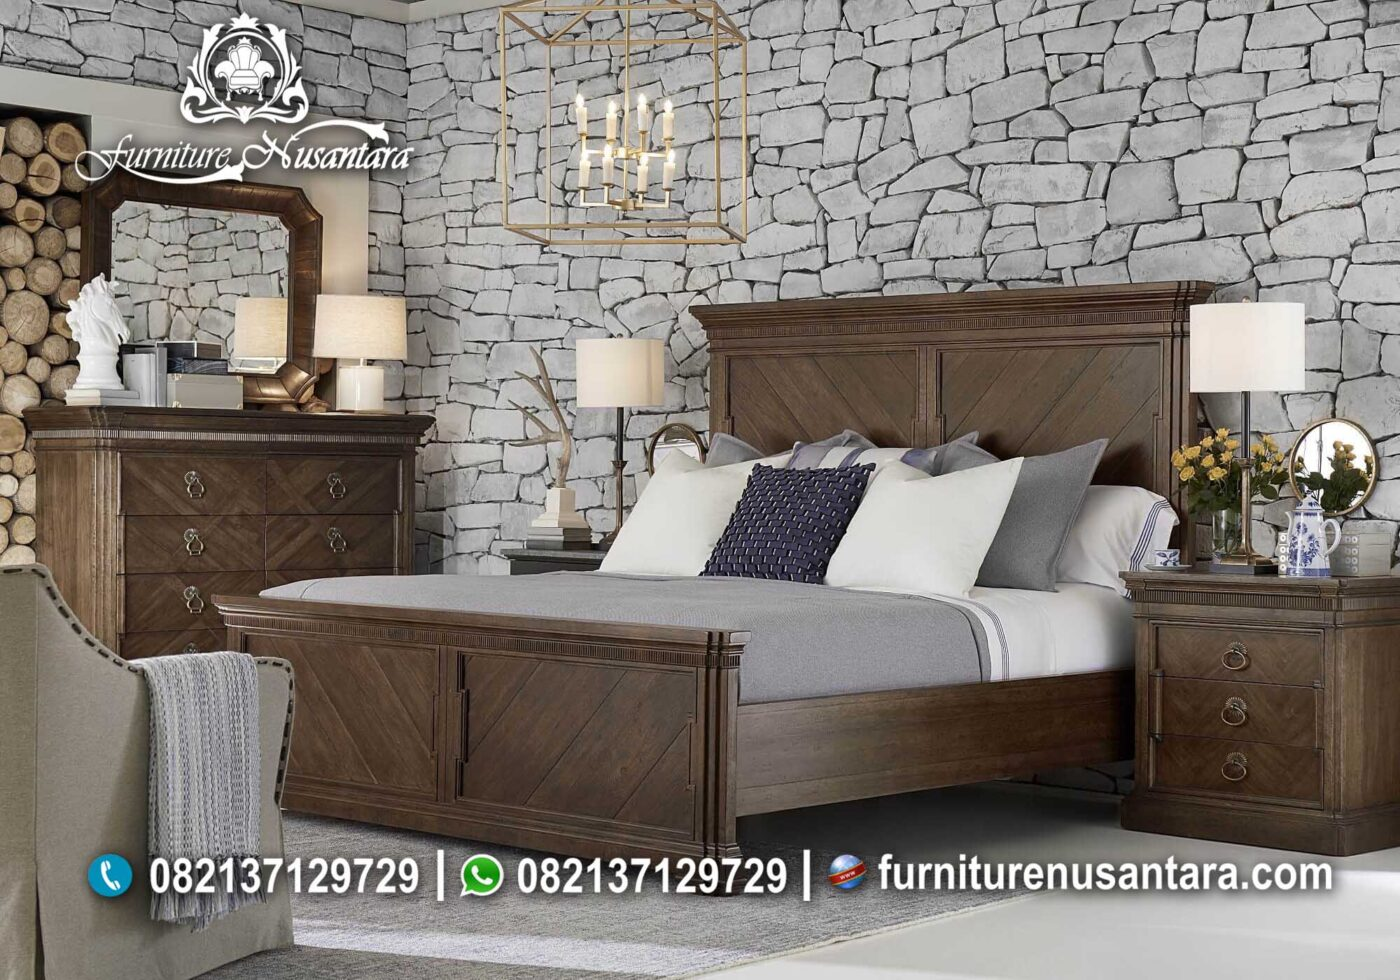 Jual Kamar Set Natural Murah KS-52, Furniture Nusantara